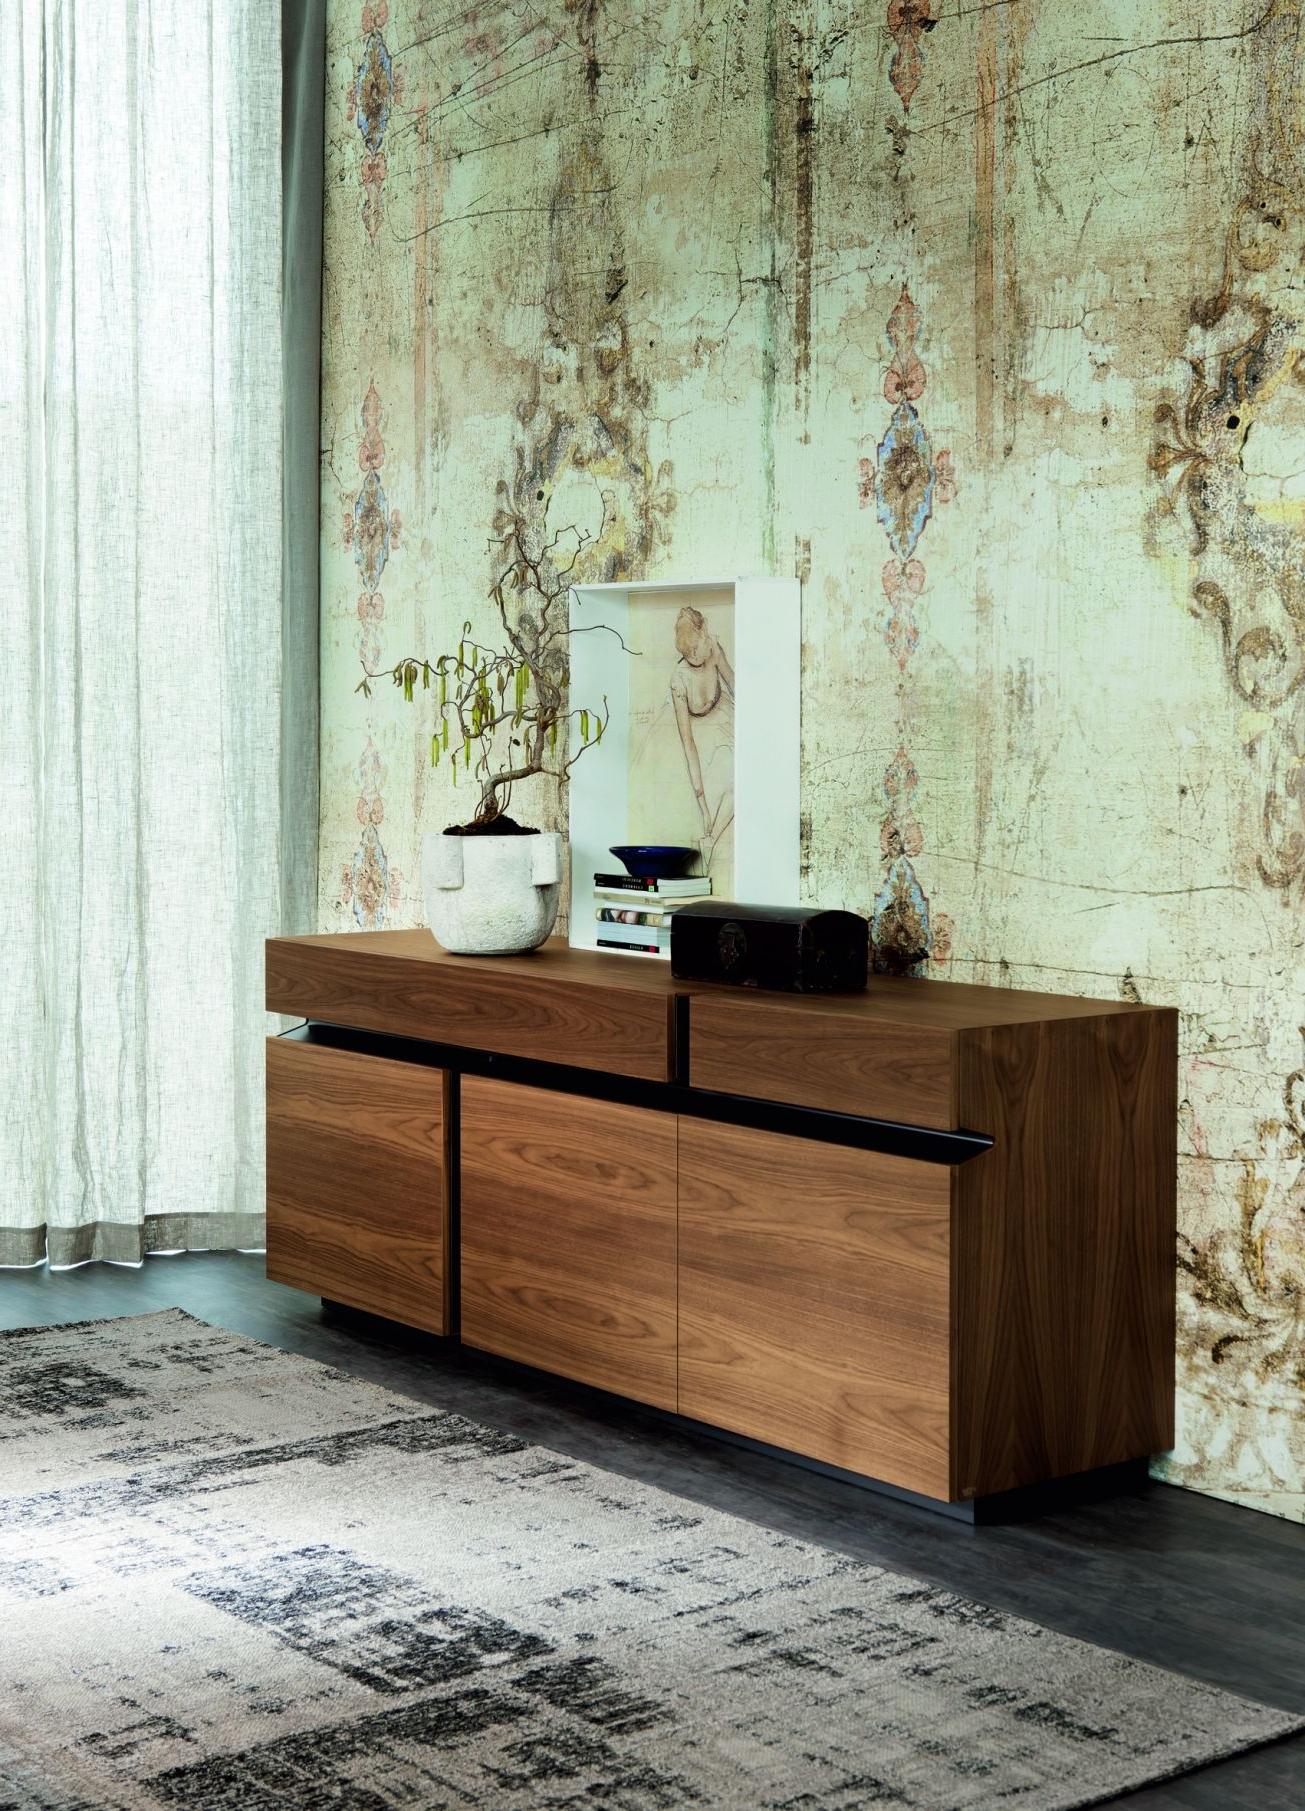 The Prisma Is A Striking Sideboard With 3 Doors And 2 Drawers In Most Recently Released Black Burnt Oak Sideboards (View 18 of 20)